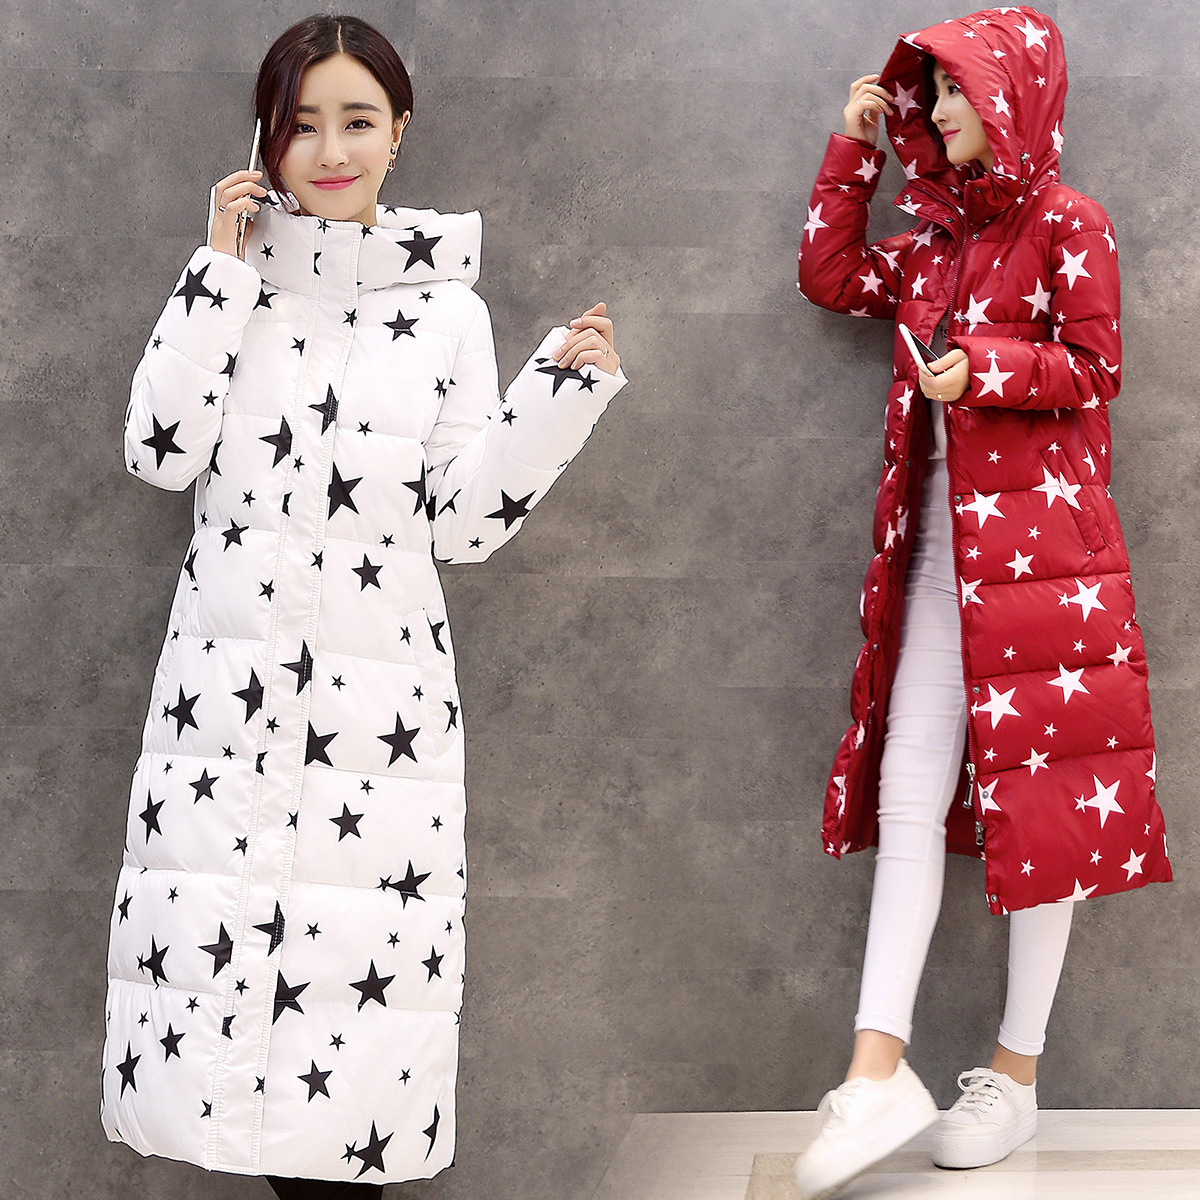 New Women Winter Jacket Cotton Padded Thick Stars Print Female Hooded Coat Parkas Warm Winter Long Womens Jackets and Coats black 2017 new parkas female winter coat jacket thick cotton down hooded coats turtleneck padded jackets womens outwear women